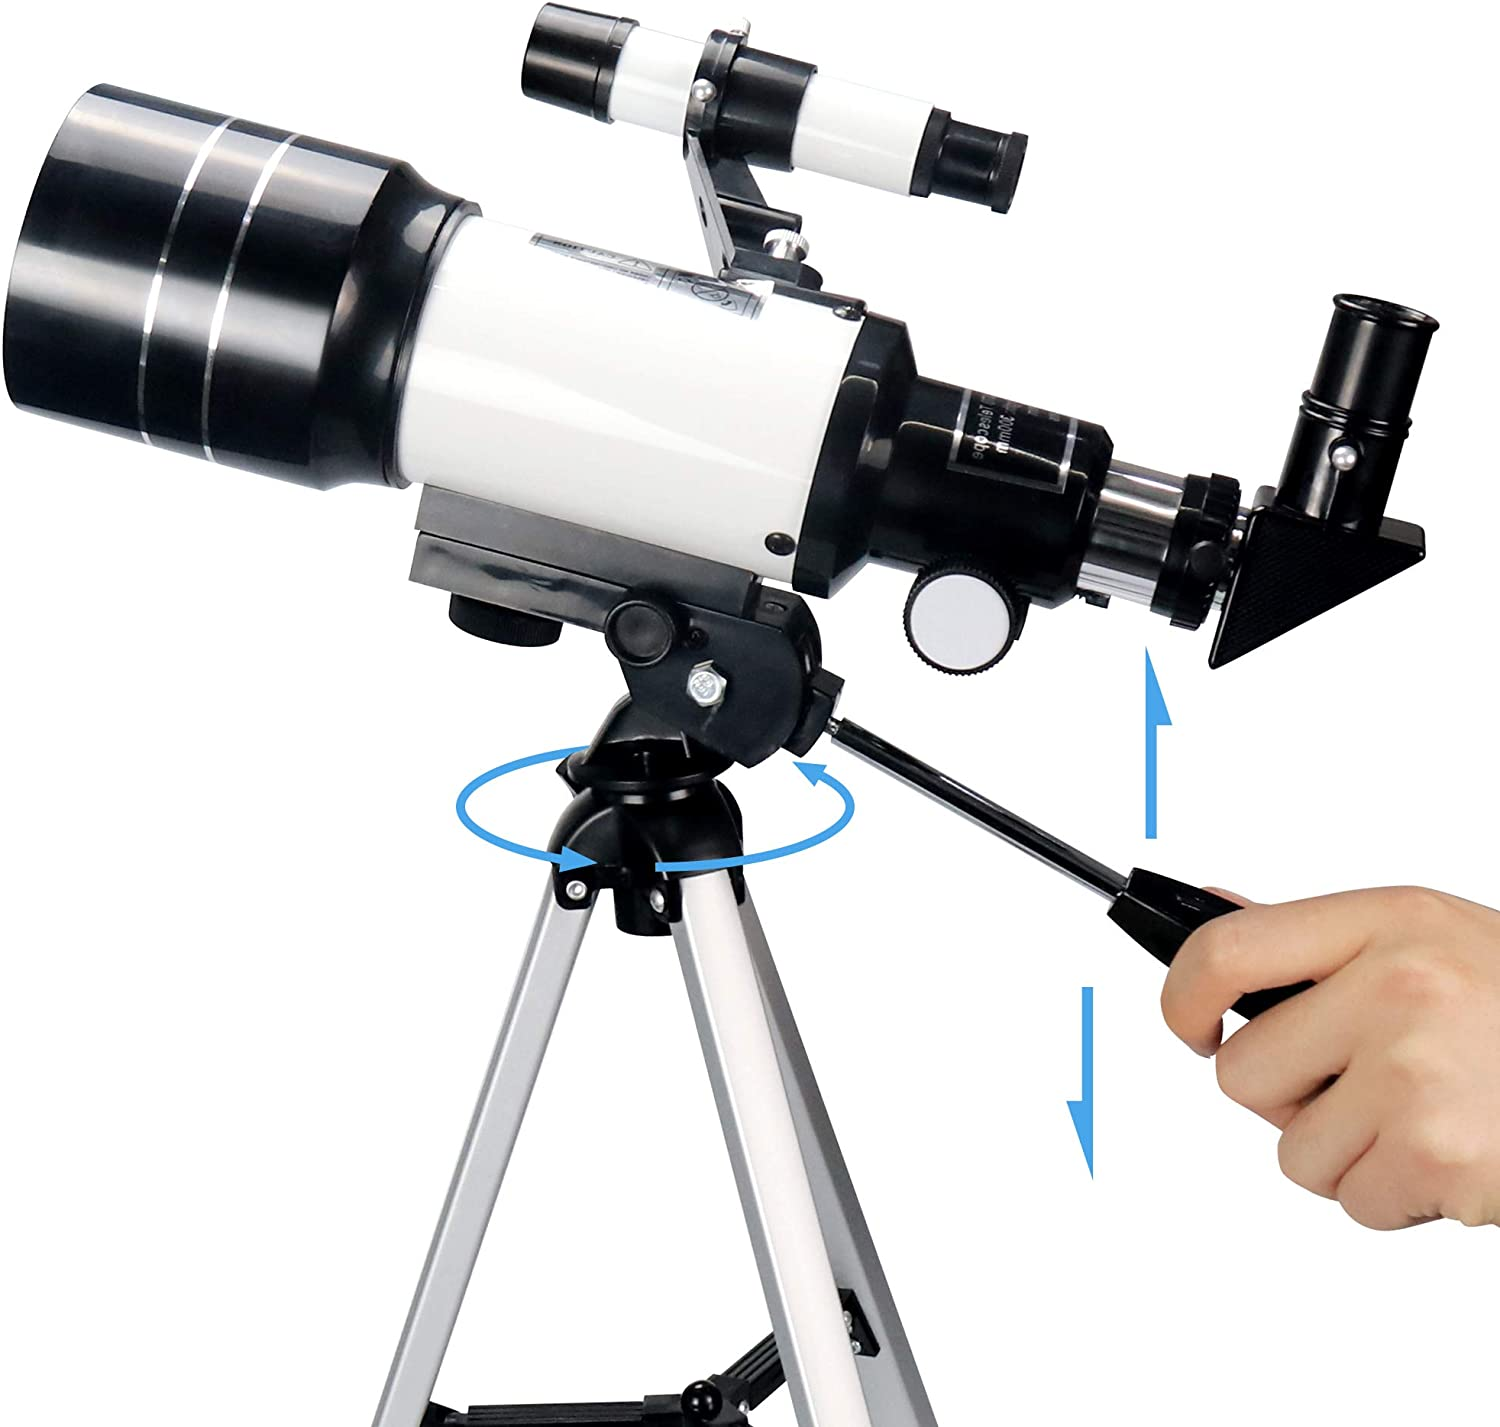 Portable Travel Telescope with Phone Adapter//Tripod//Finder Scope Optics Upgrade Upgrade Telescopes for Adults Telescopes for Astronomy Beginners Kids Adults 70mm Aperture 300mm AZ Mount